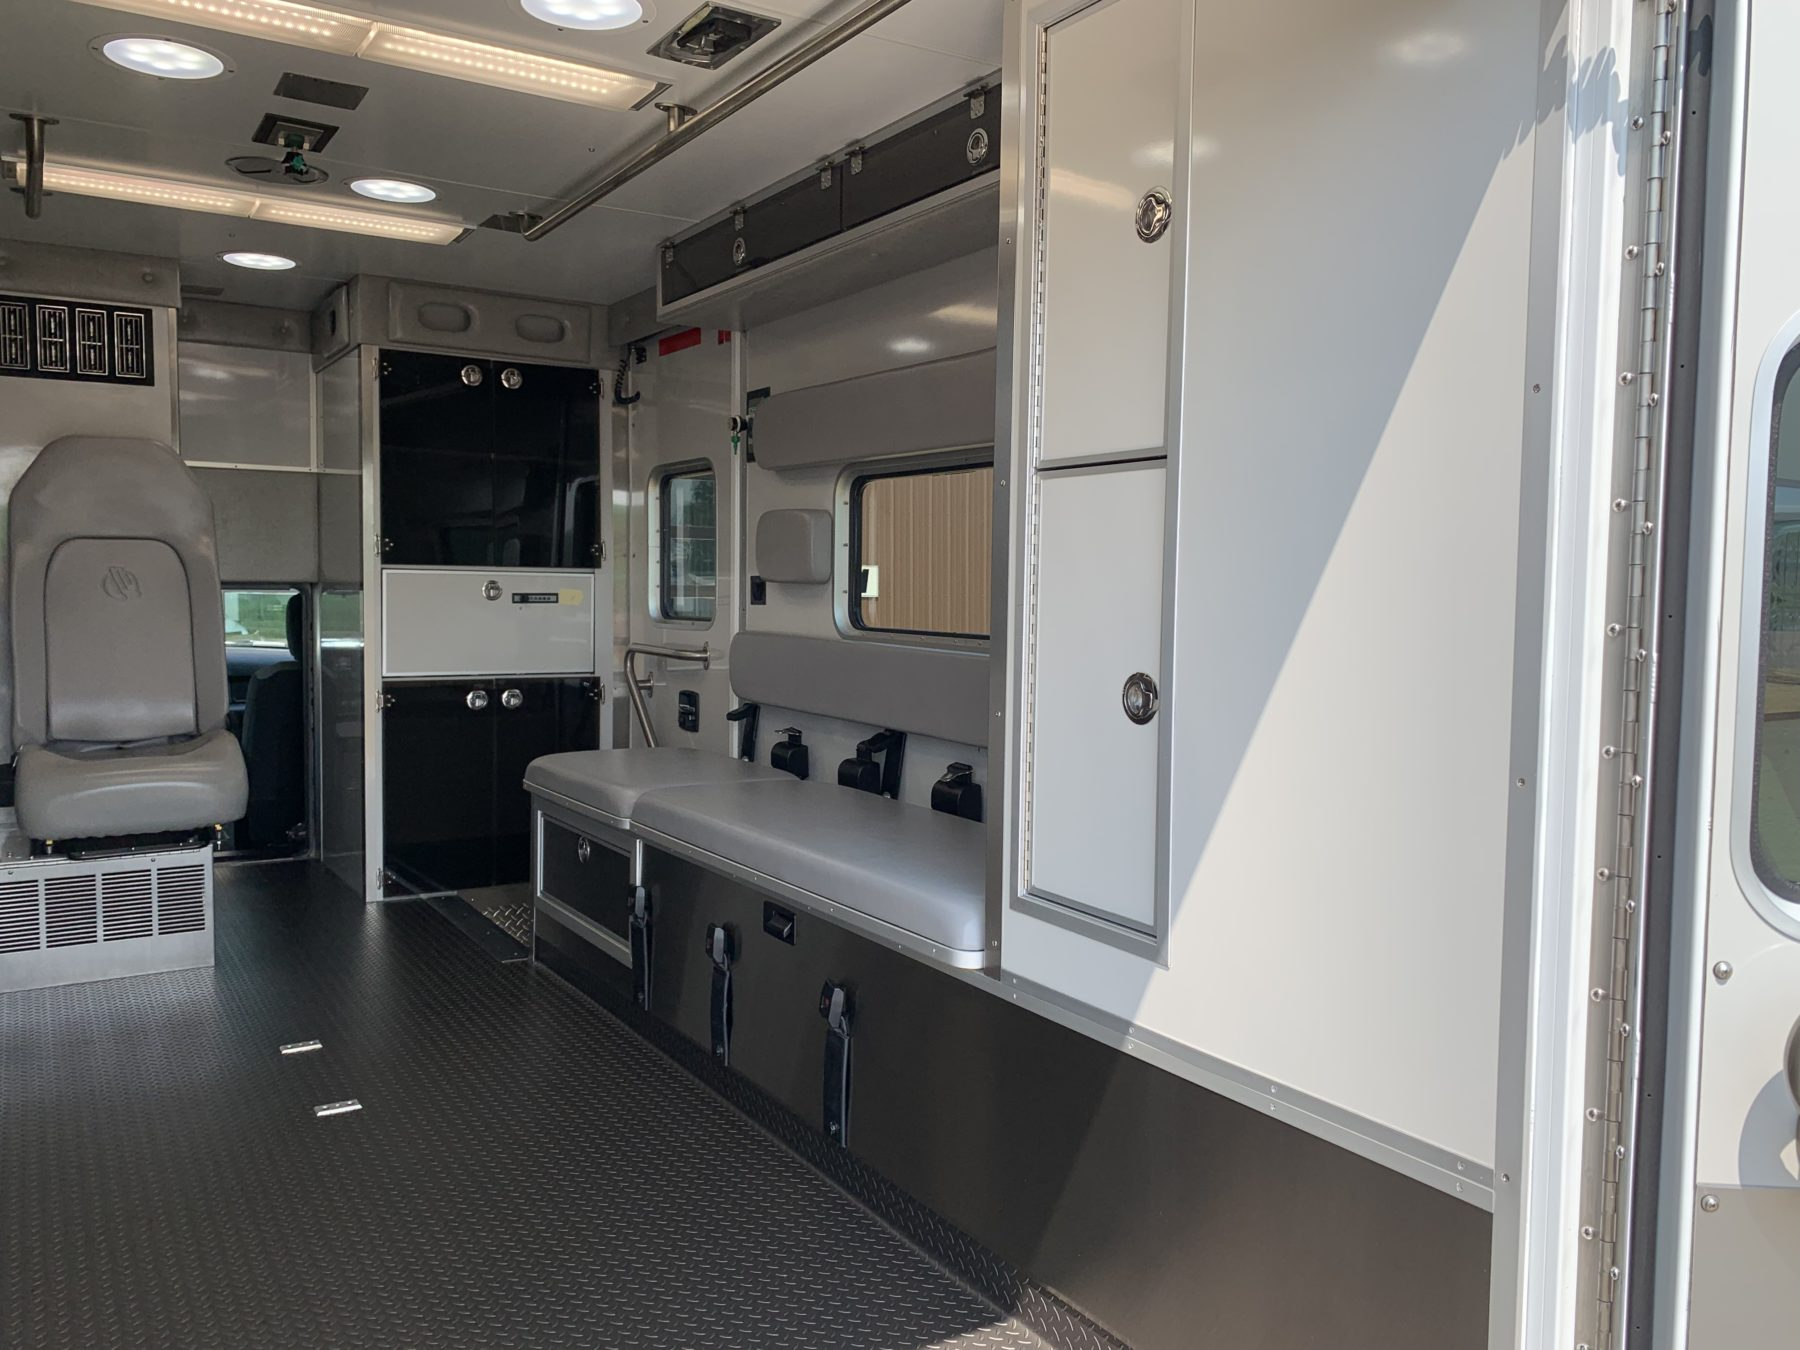 2021 Ram 4500 4x4 Heavy Duty Ambulance For Sale – Picture 13